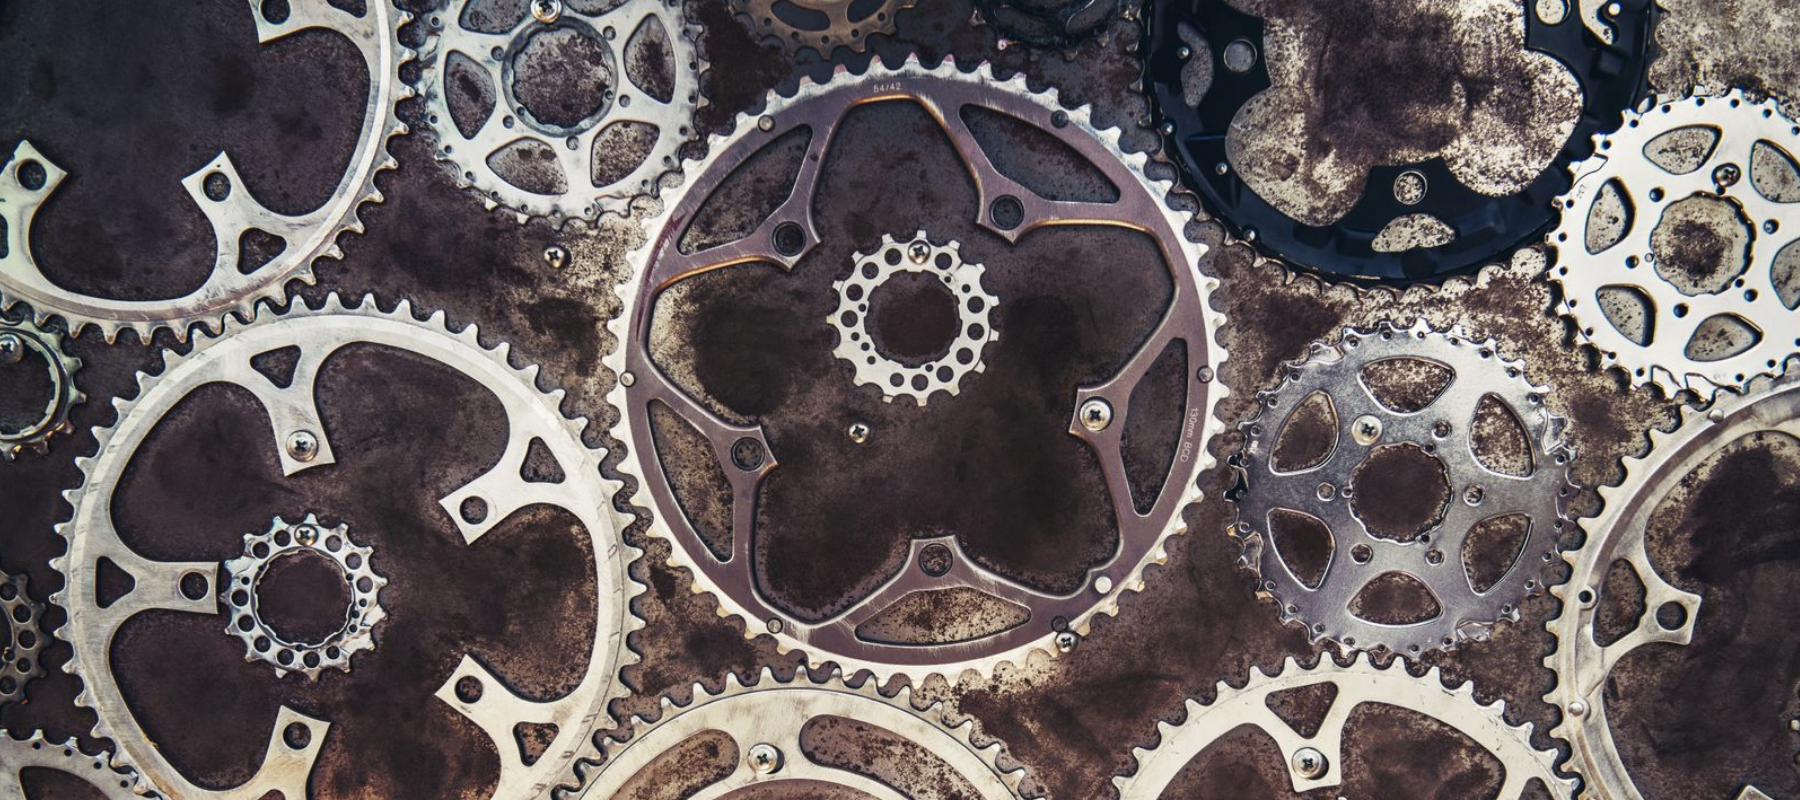 Keep your data gears turning